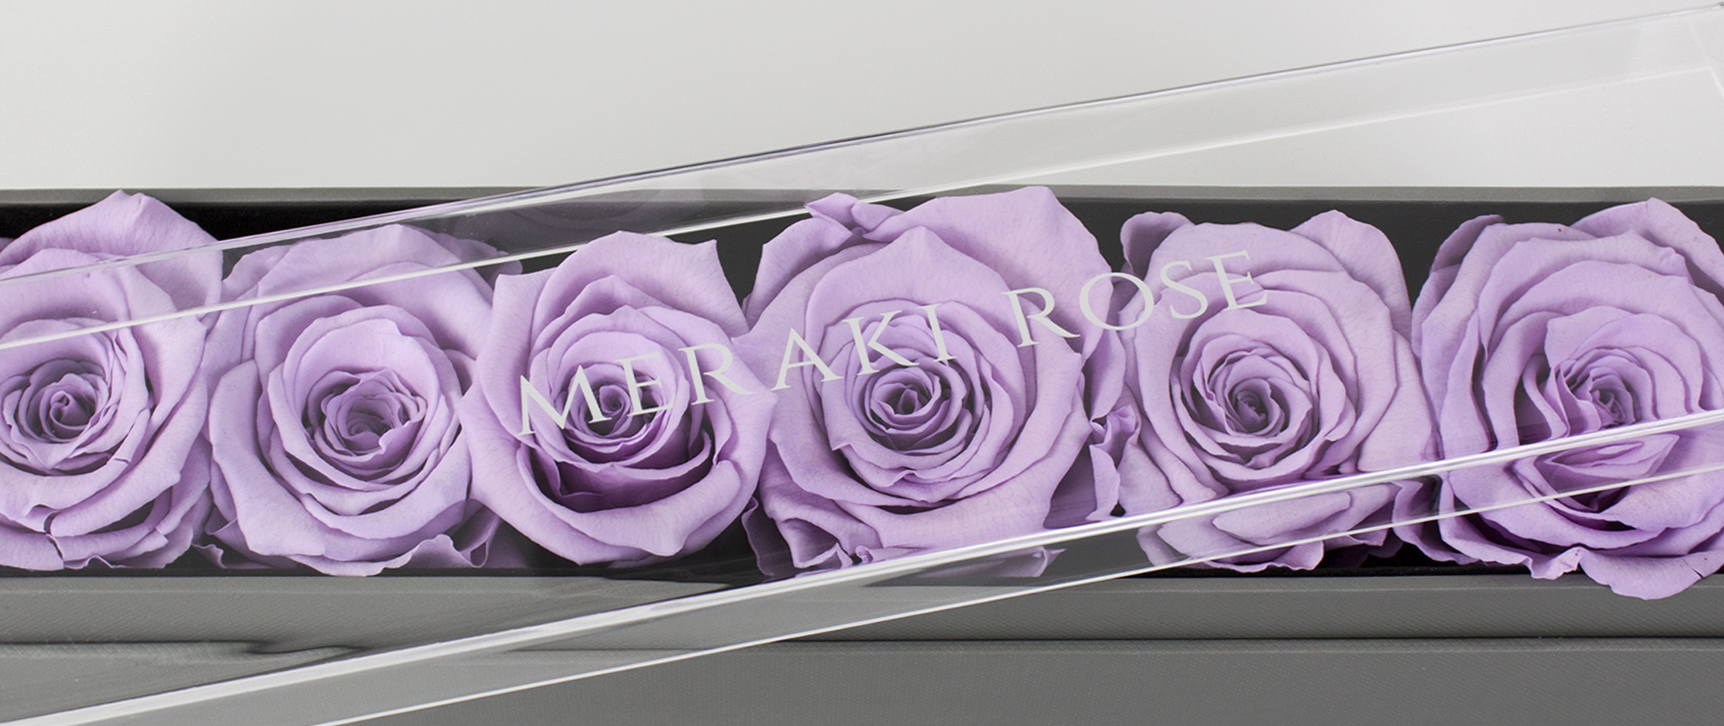 Fully Transparent Top - Our fully transparent top allows your loved one to see each individual rose without having to take the lid off. We take pride in our products and we know you would love to show off the vibrant roses that sit inside your box. With our transparent lid, you can display your gift anywhere, protected and free from dust.